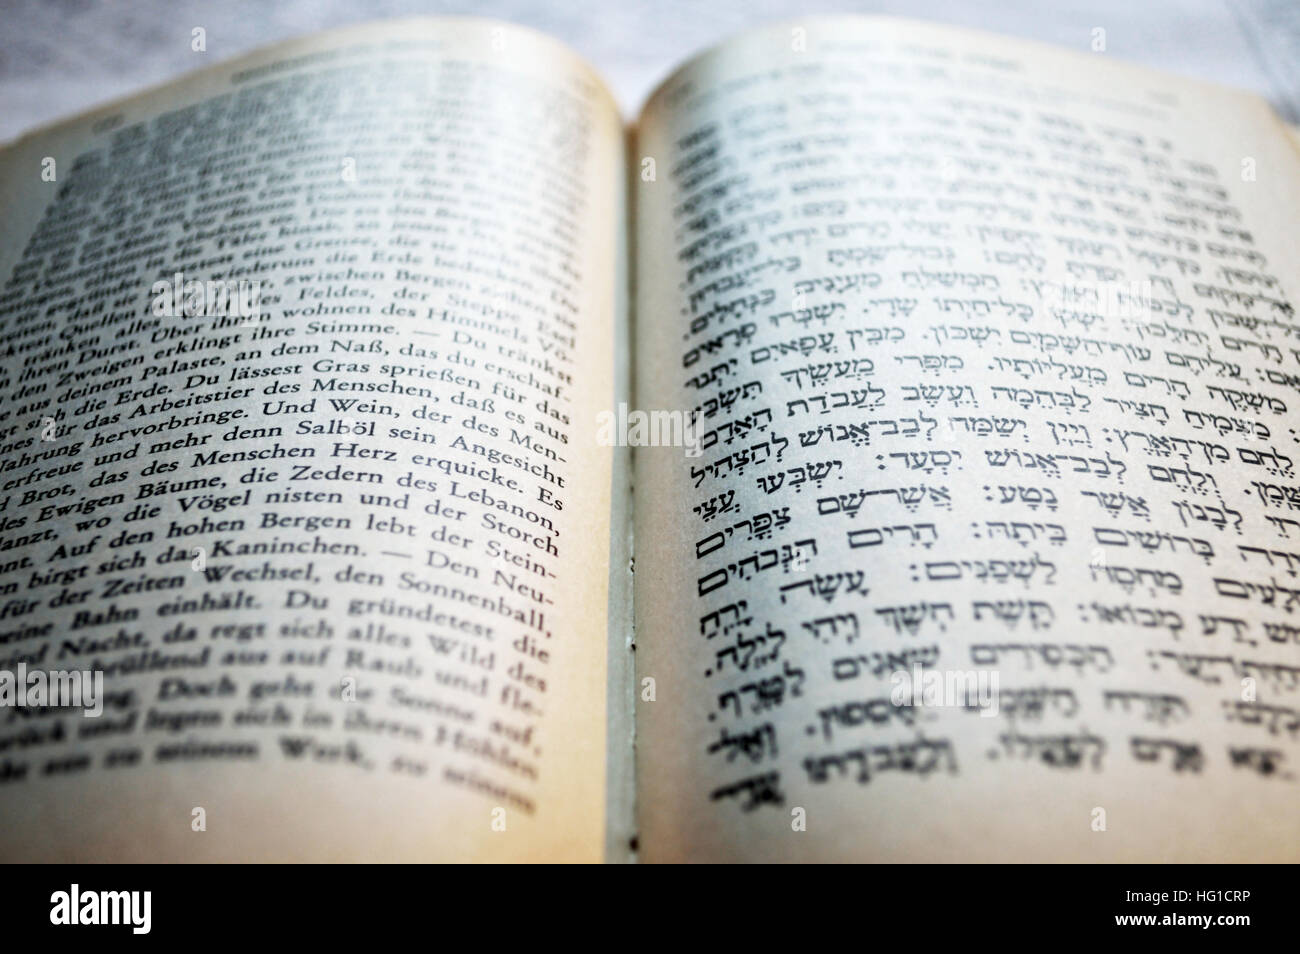 Excerpt in Hebrew writing from the Shulchan Aruch with German translation - Stock Image